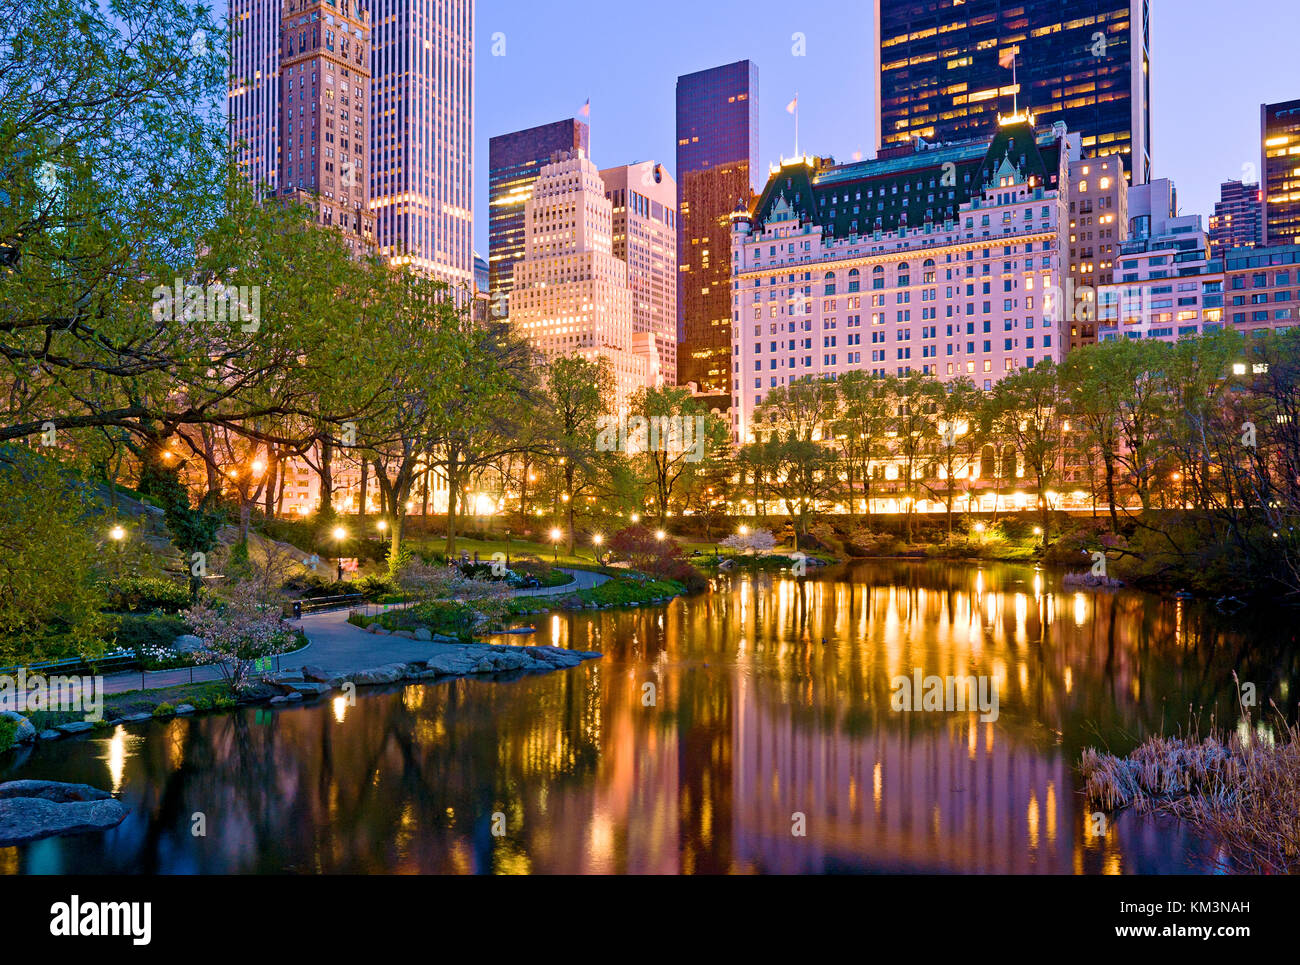 Plaza Hotel Central Park New York City Manhattan - Stock Image